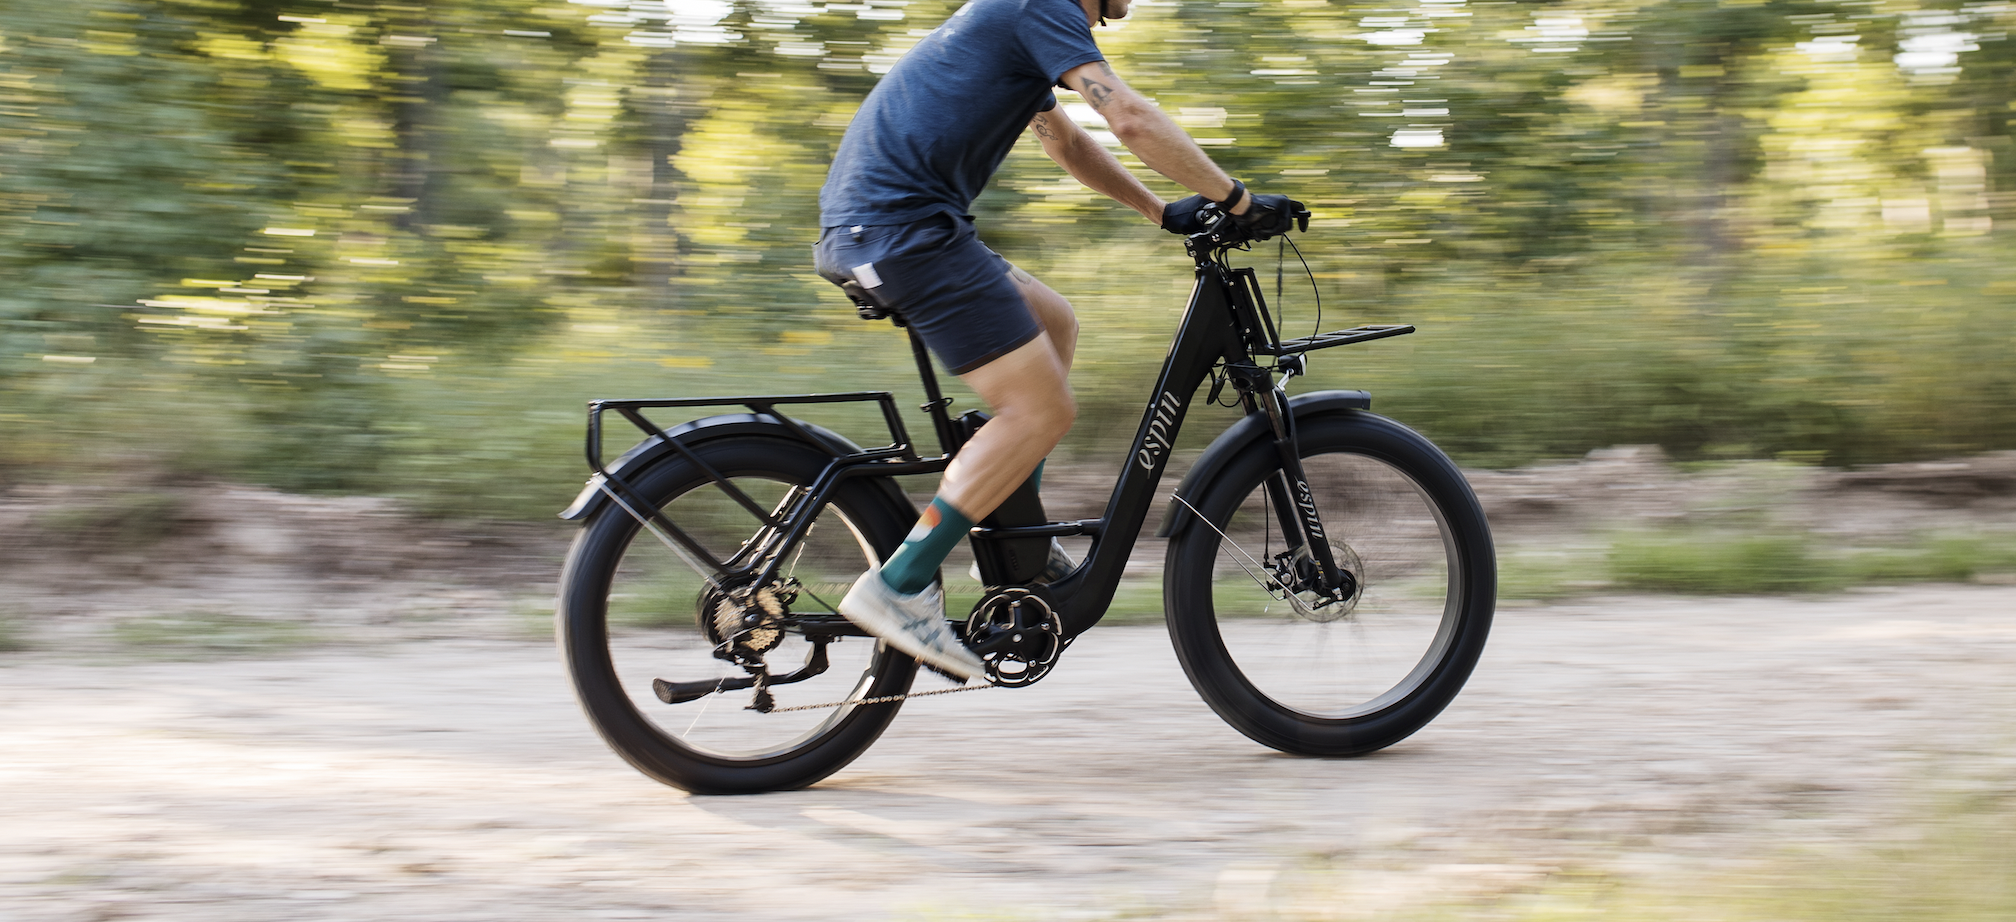 Are Electric Bikes Good for Weight Loss